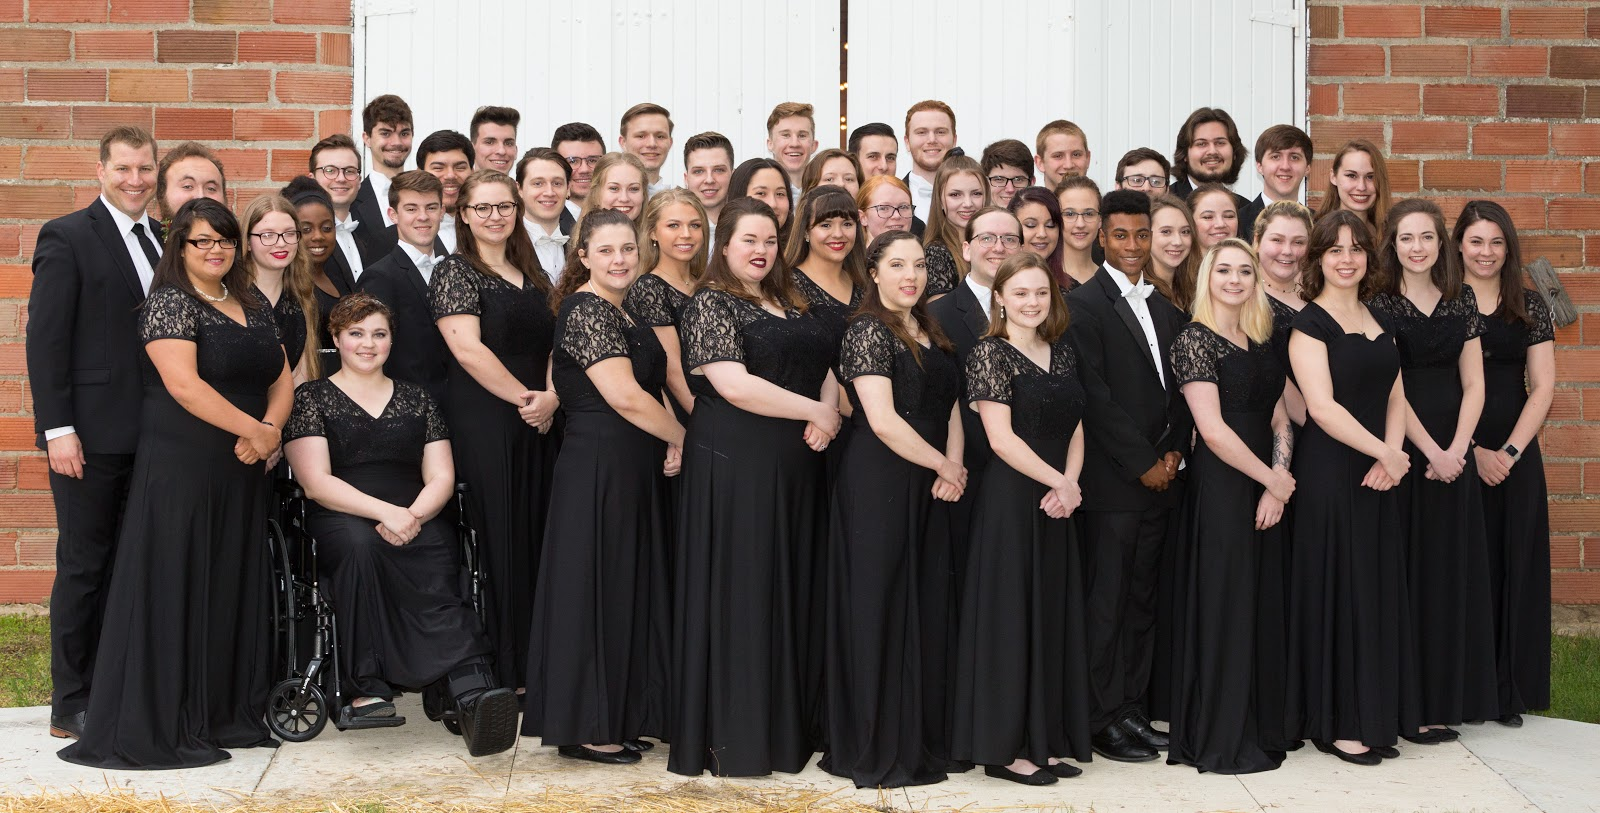 Choir picture